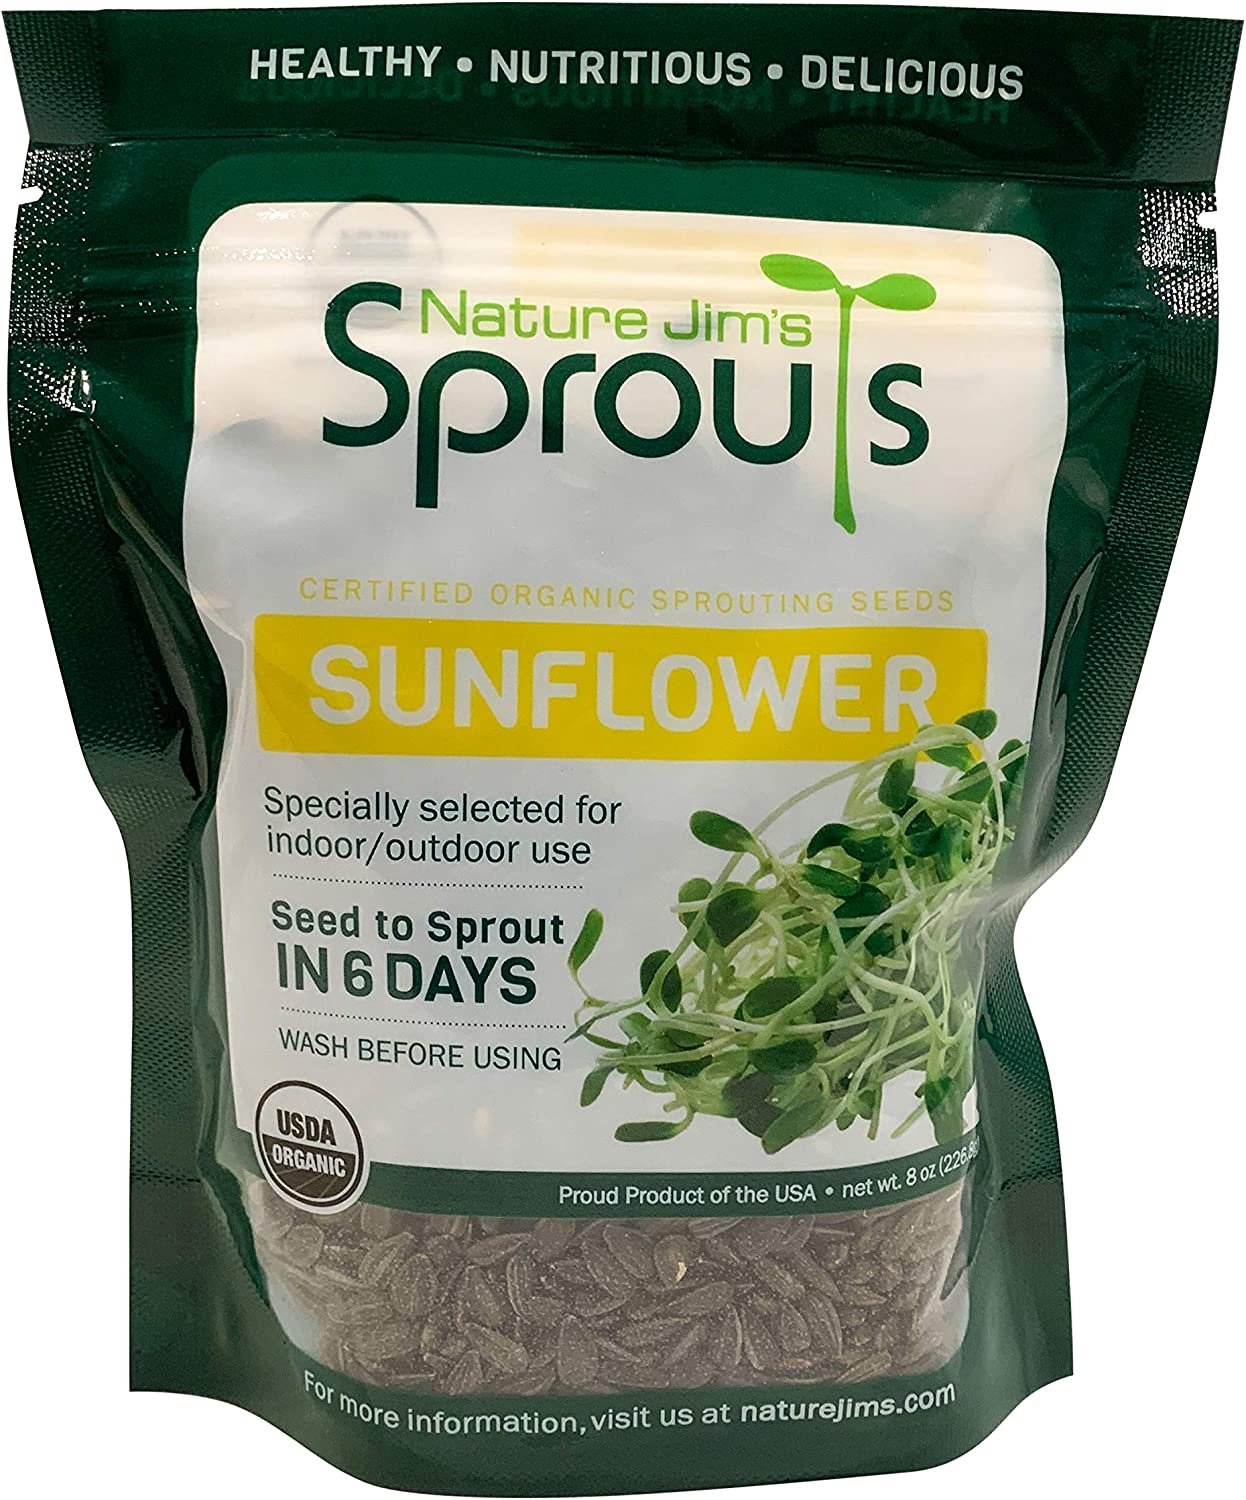 Nature Jims Sprouts Sunflower Seeds - Certified Organic Black Oil Sunflower Sprouts for Soups - Raw Bird Food Seeds - Non-GMO, Chemicals-Free - Easy to Plant, Fast Sprouting Sun Flower Seeds - 8 Oz